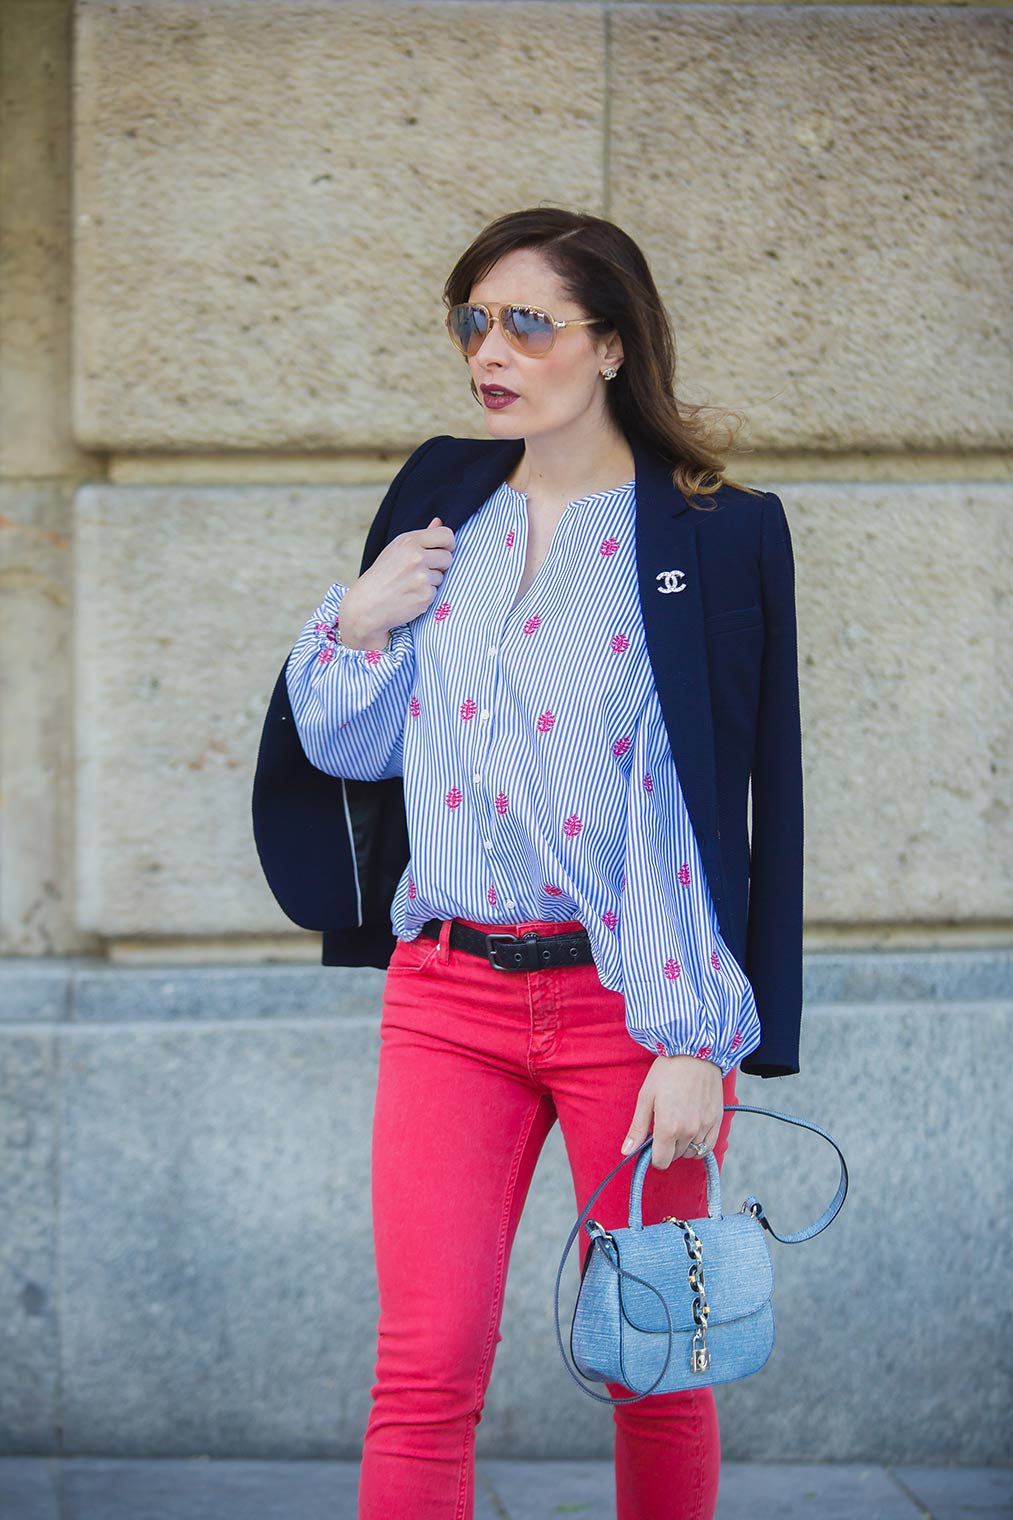 Louis Vuitton bag and red jeans